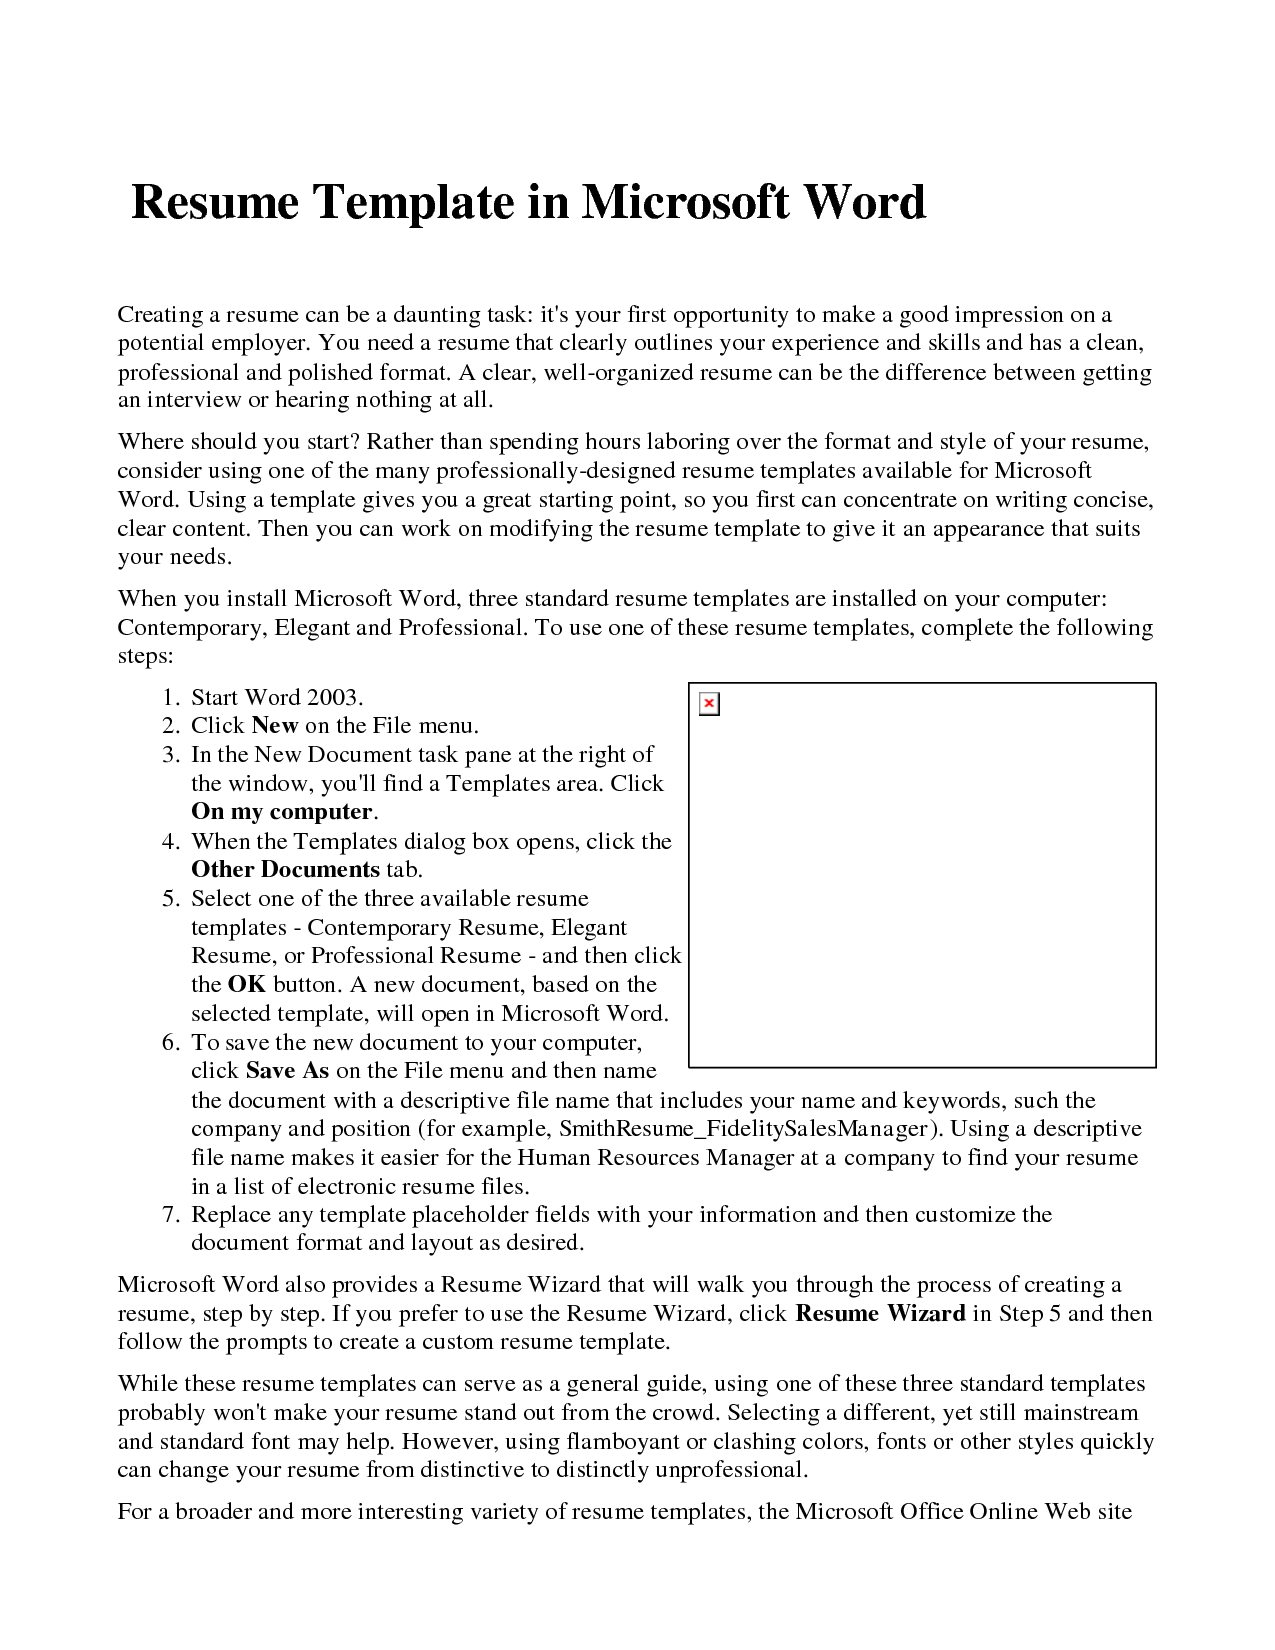 Free Resume Templates Microsoft Word Resume Templates Microsoft Word  Httpwwwresumecareer